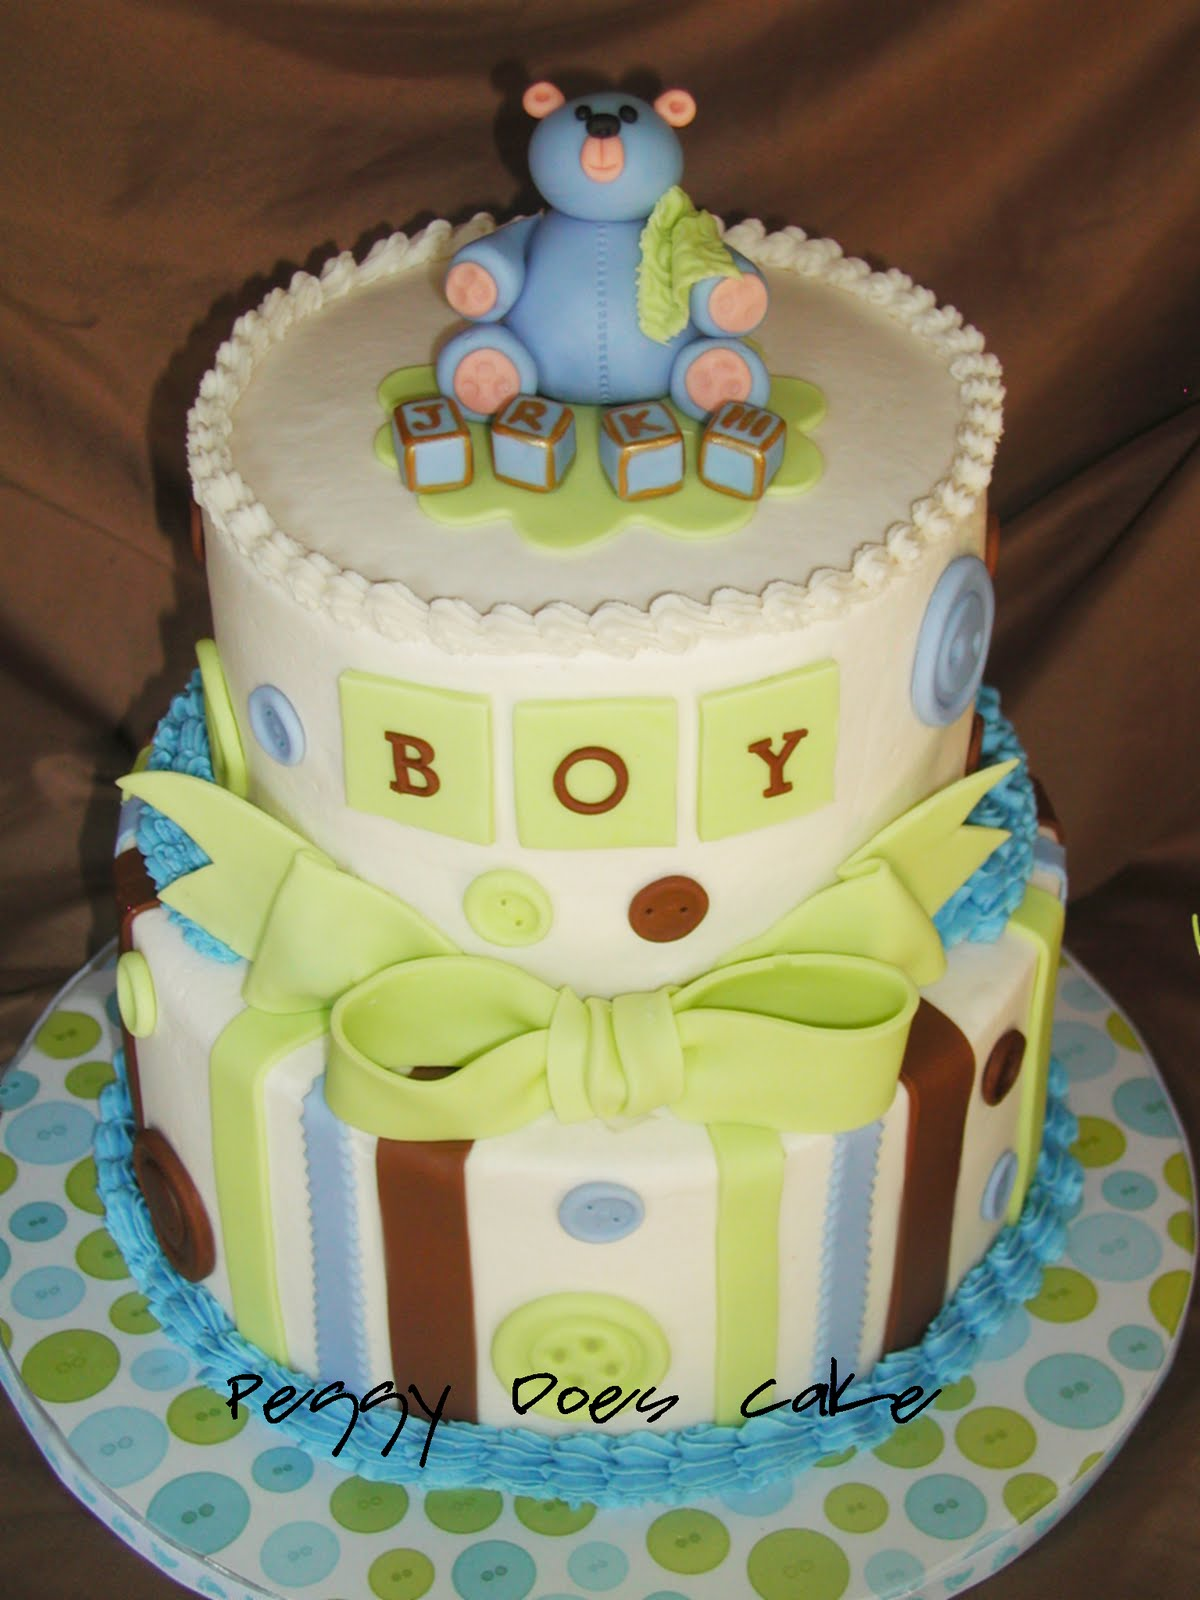 Cute Baby Cake Images : Baby Shower Cake: Cute as a Button!